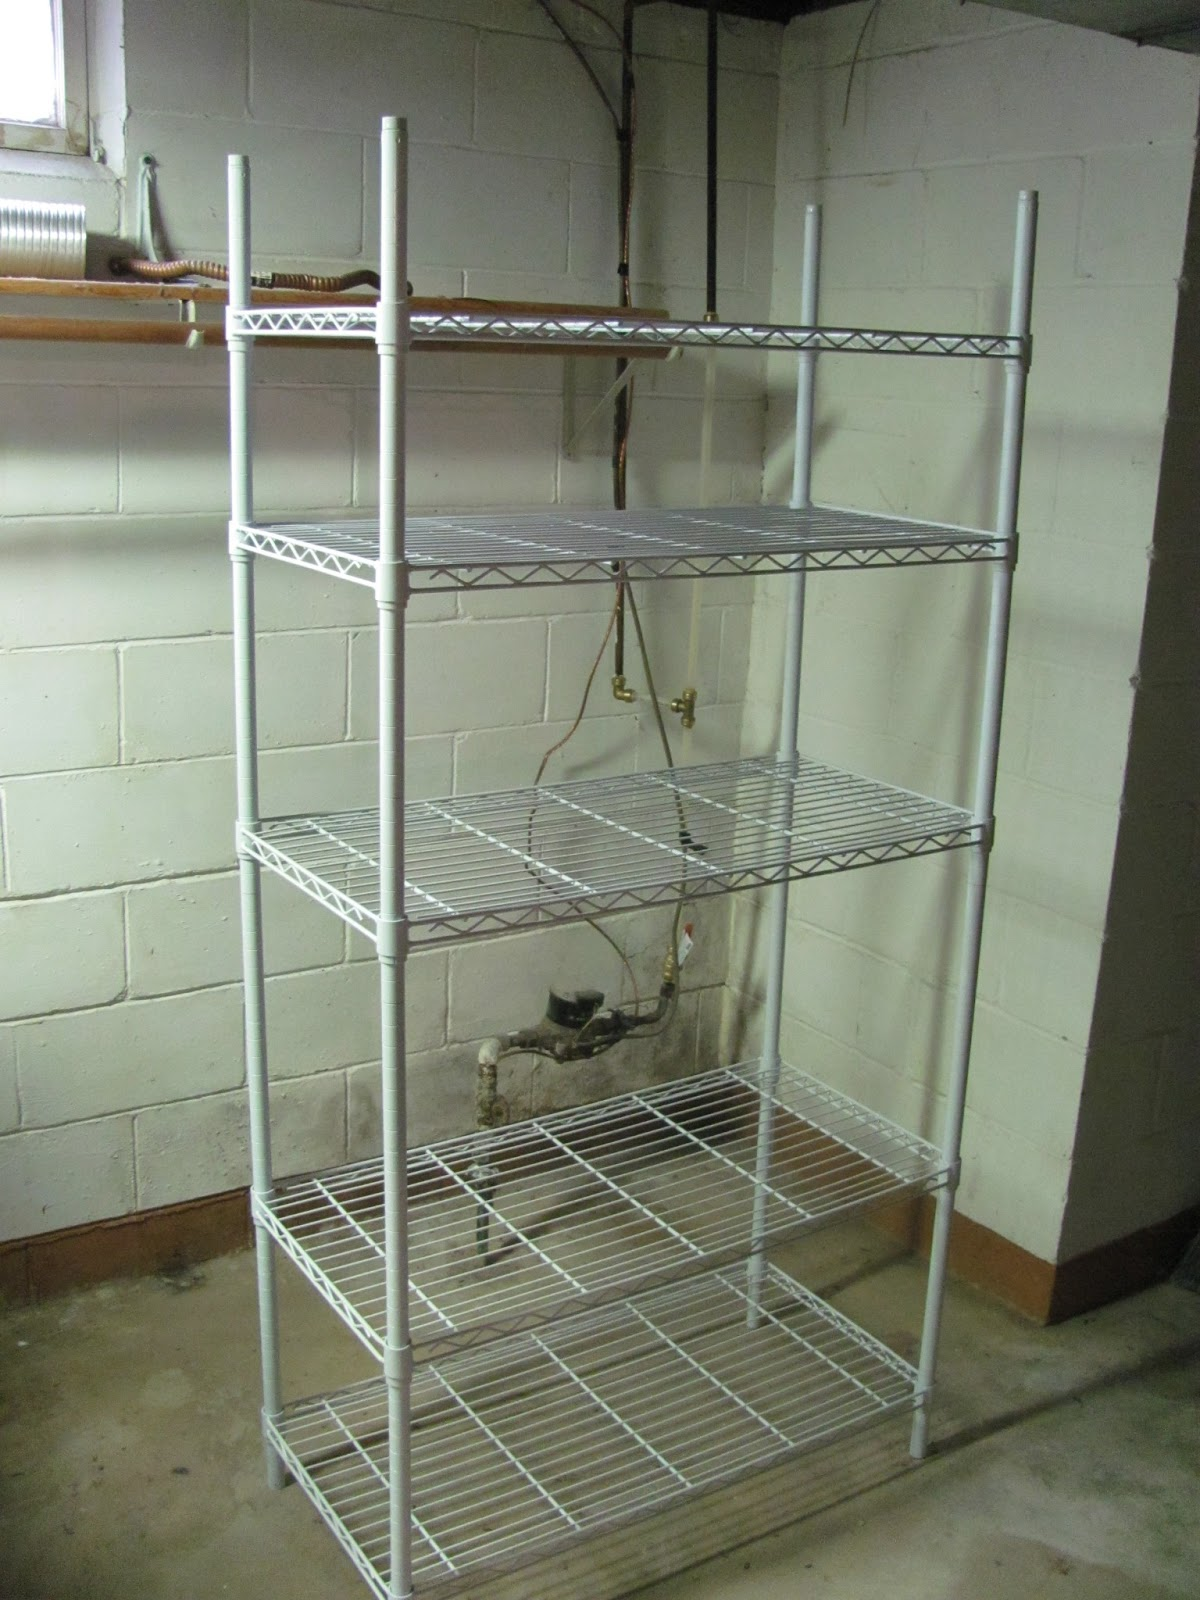 Adjustable wire shelving unit on display in the basement before being sold on Craigslist